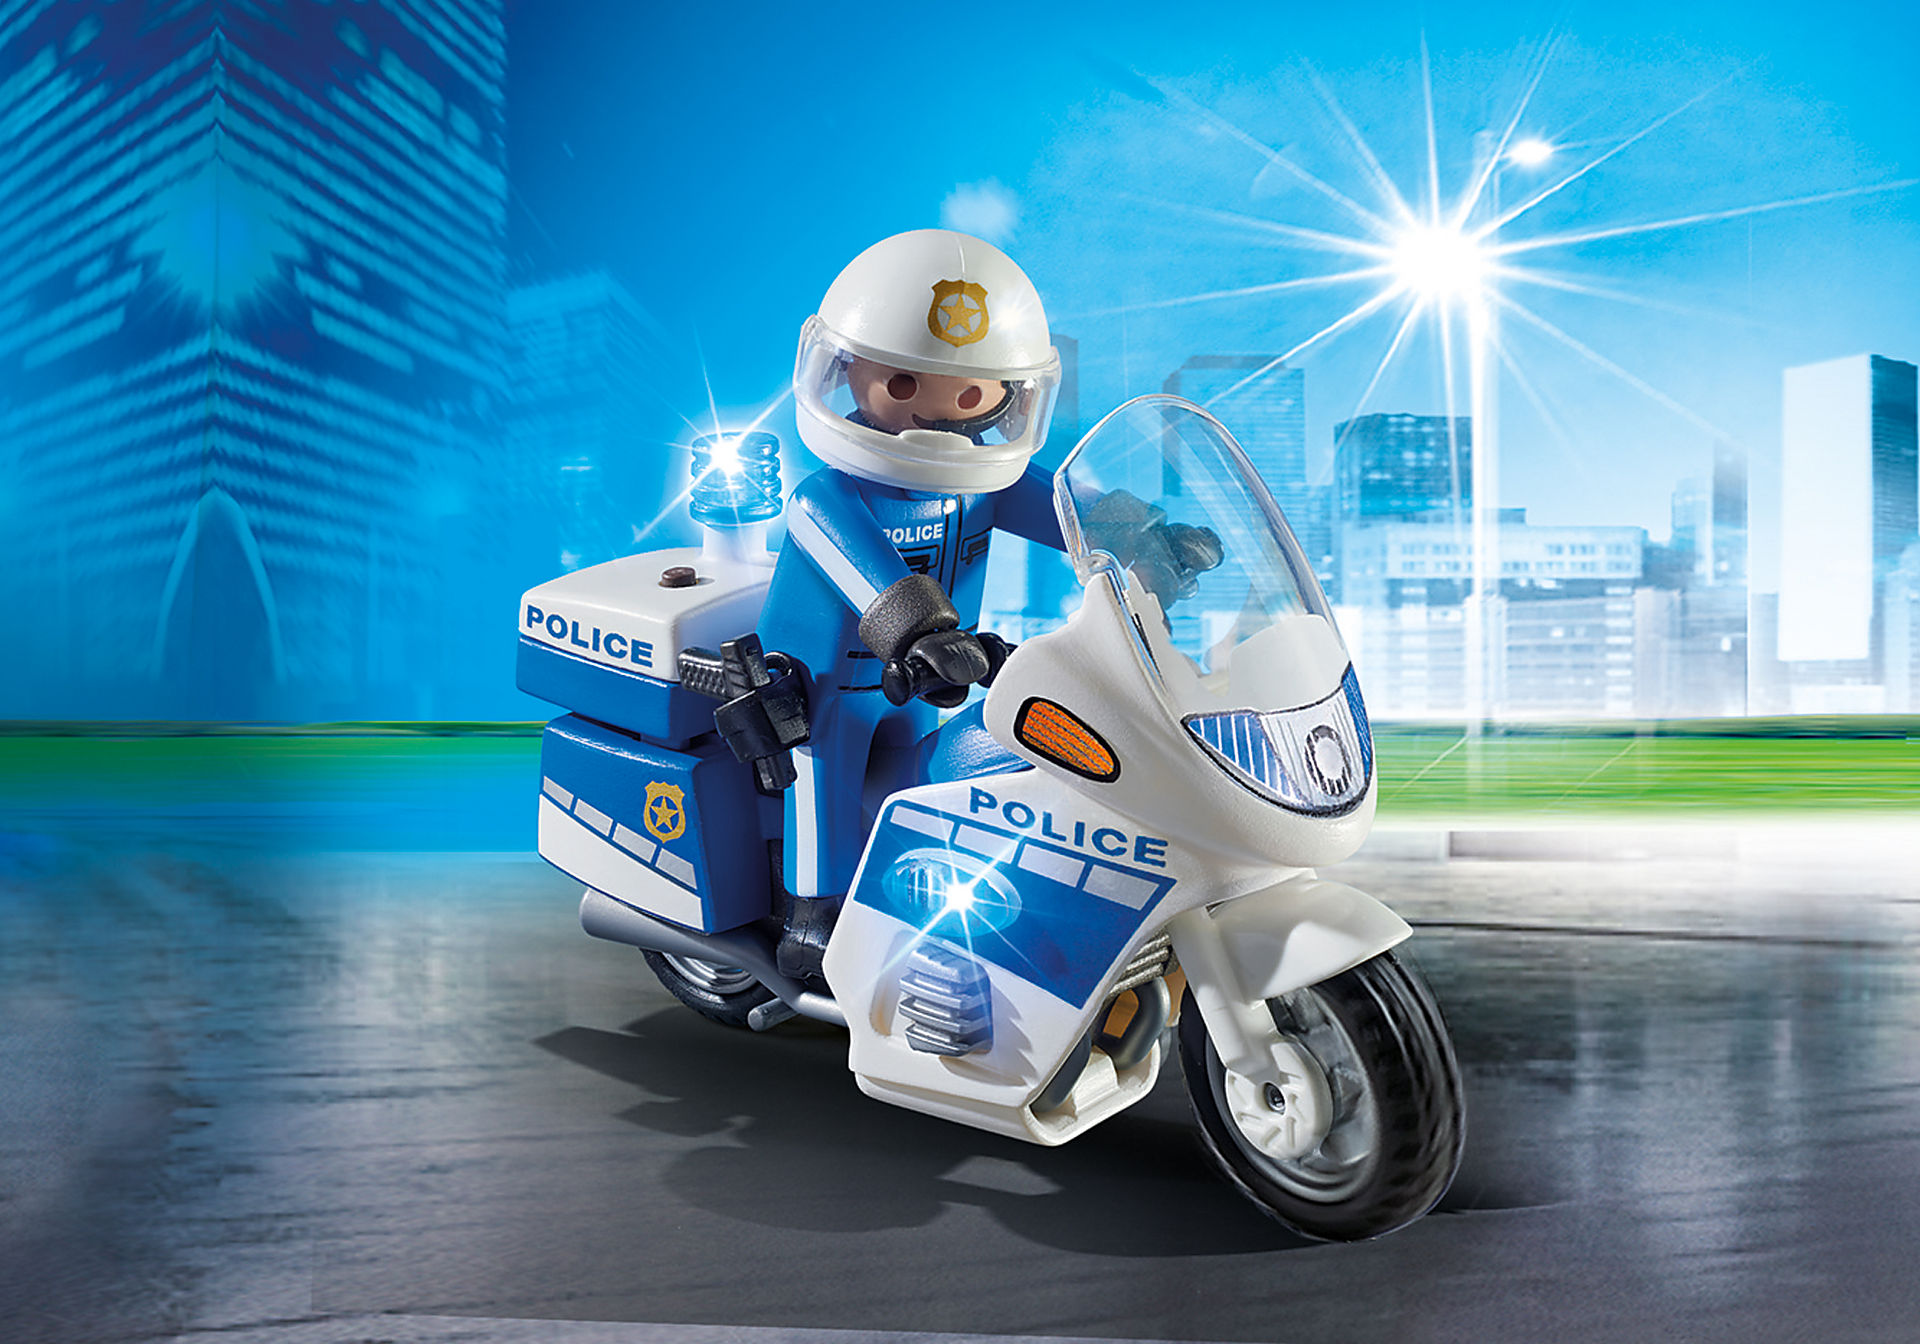 http://media.playmobil.com/i/playmobil/6923_product_detail/Policía con Moto y Luces LED